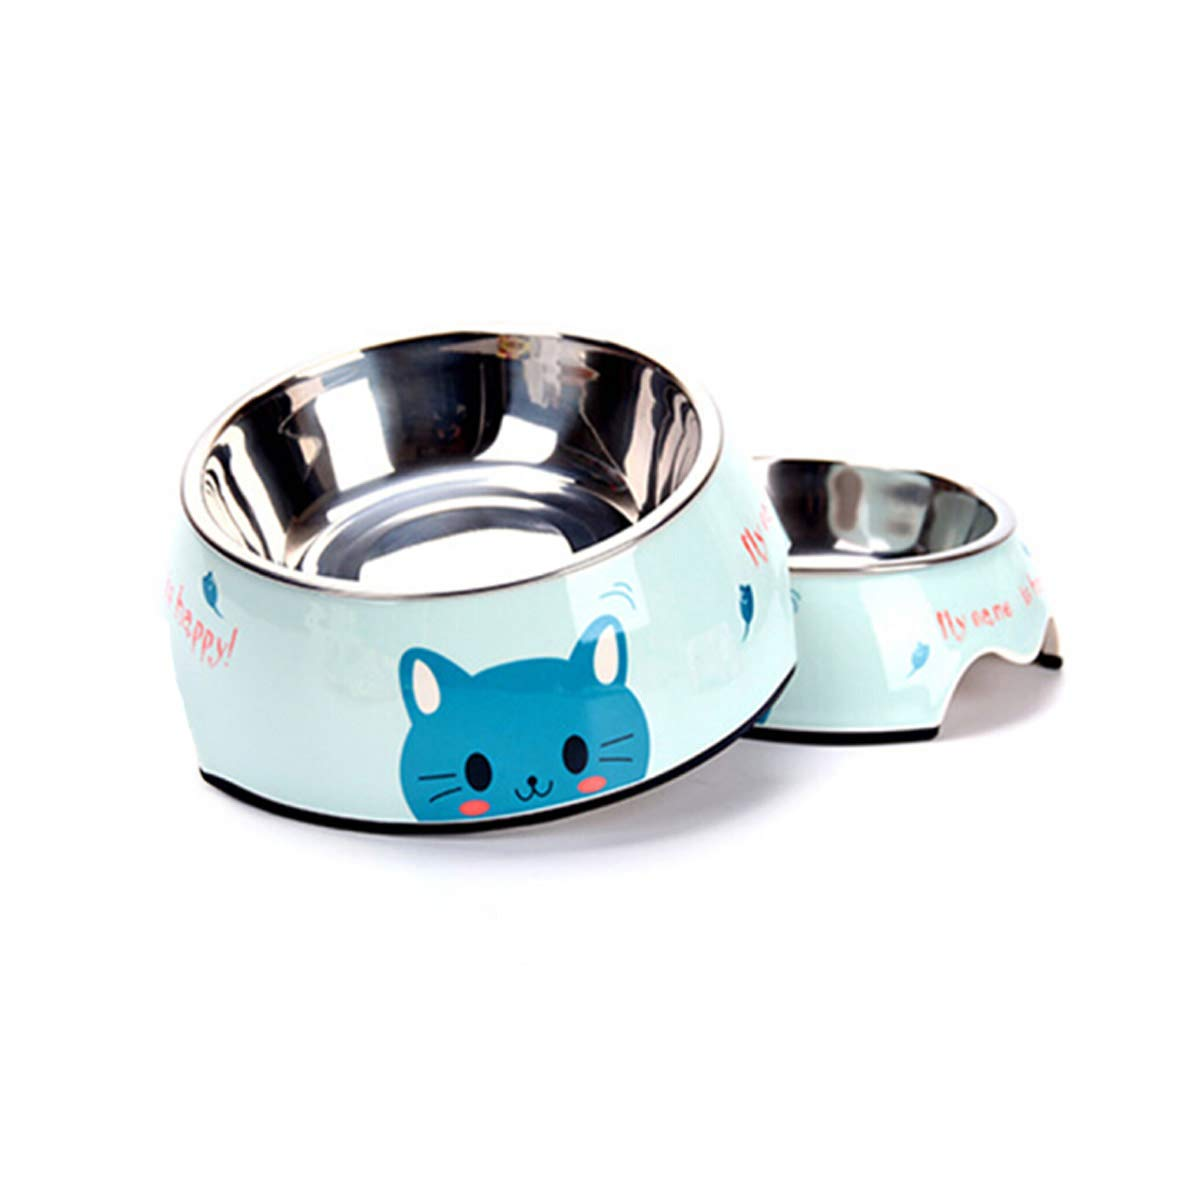 bluee Medium bluee Medium XIAN Cat Bowl, Cat Food Bowl, Dog Food Bowl, Pet Supplies, Ceramic Bowl, Cat Feeder, Dog Food Bowl, Best Gift Easy to Clean Bacteria & Rust Resistant (color   bluee, Size   Medium)